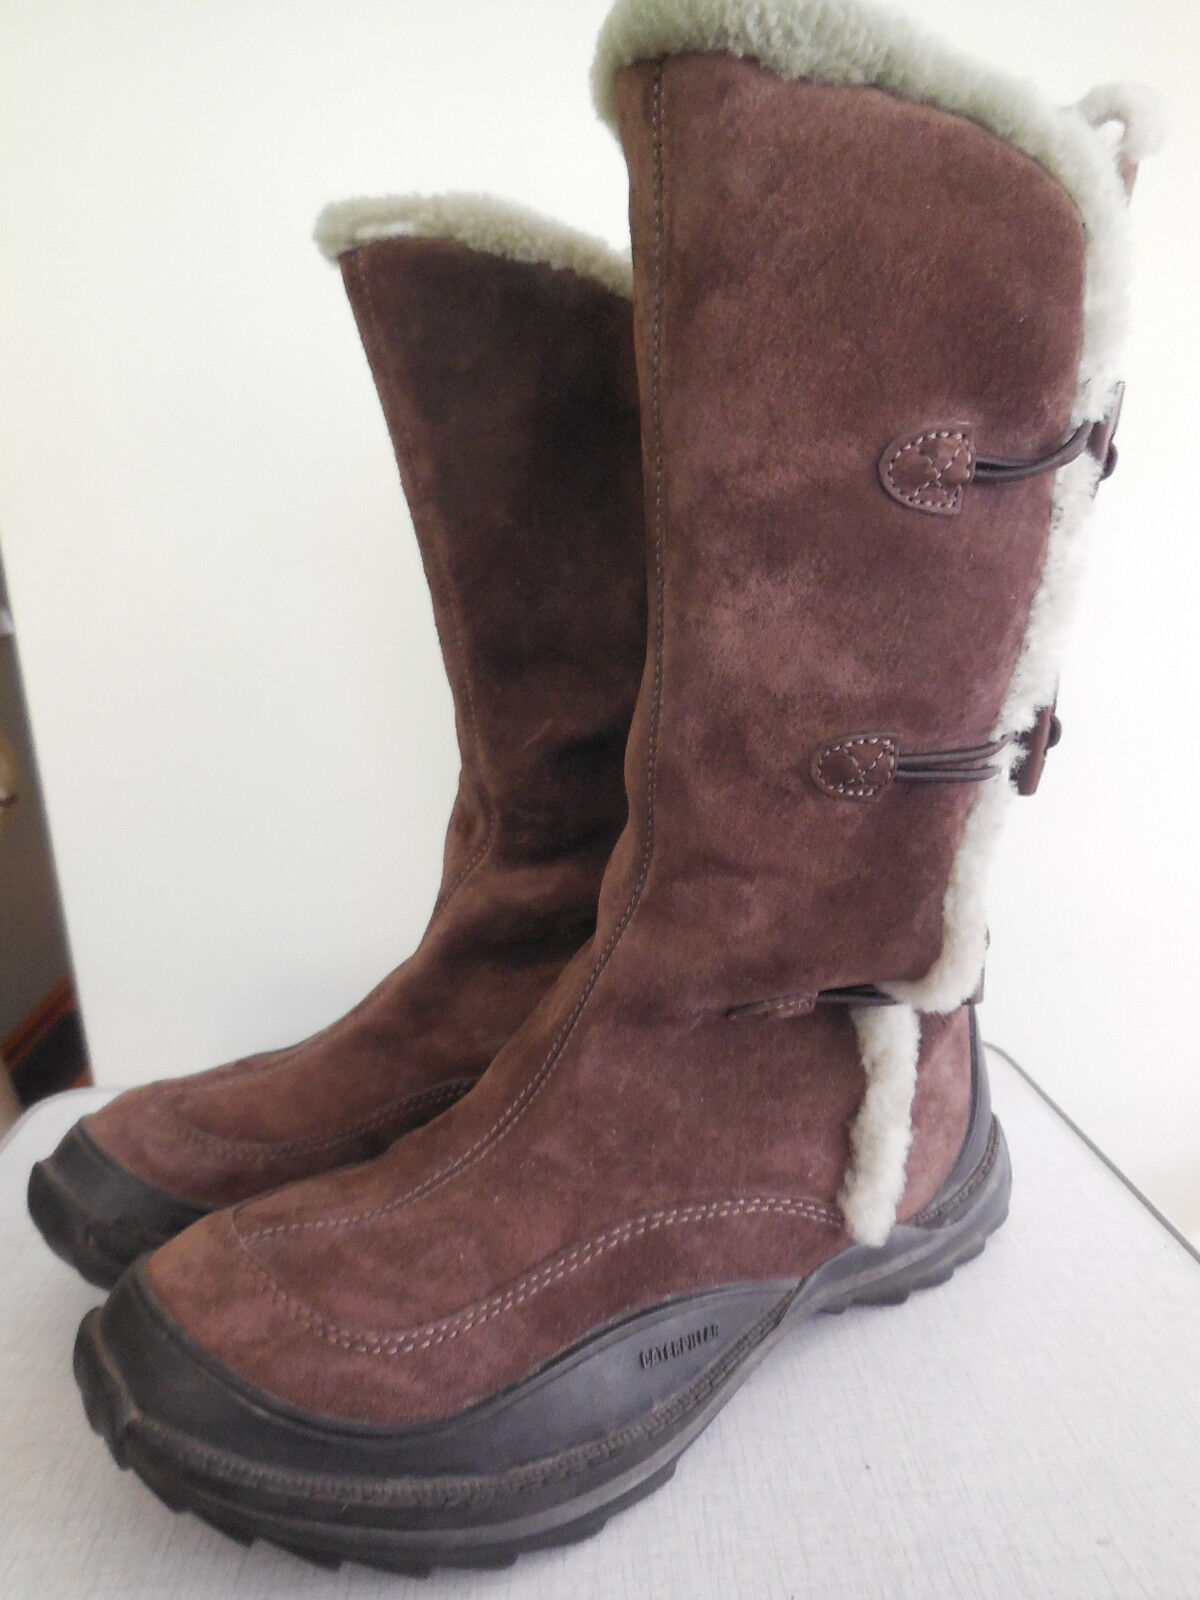 CAT Caterpillar Polartec brown leather boots, woman's size US 9